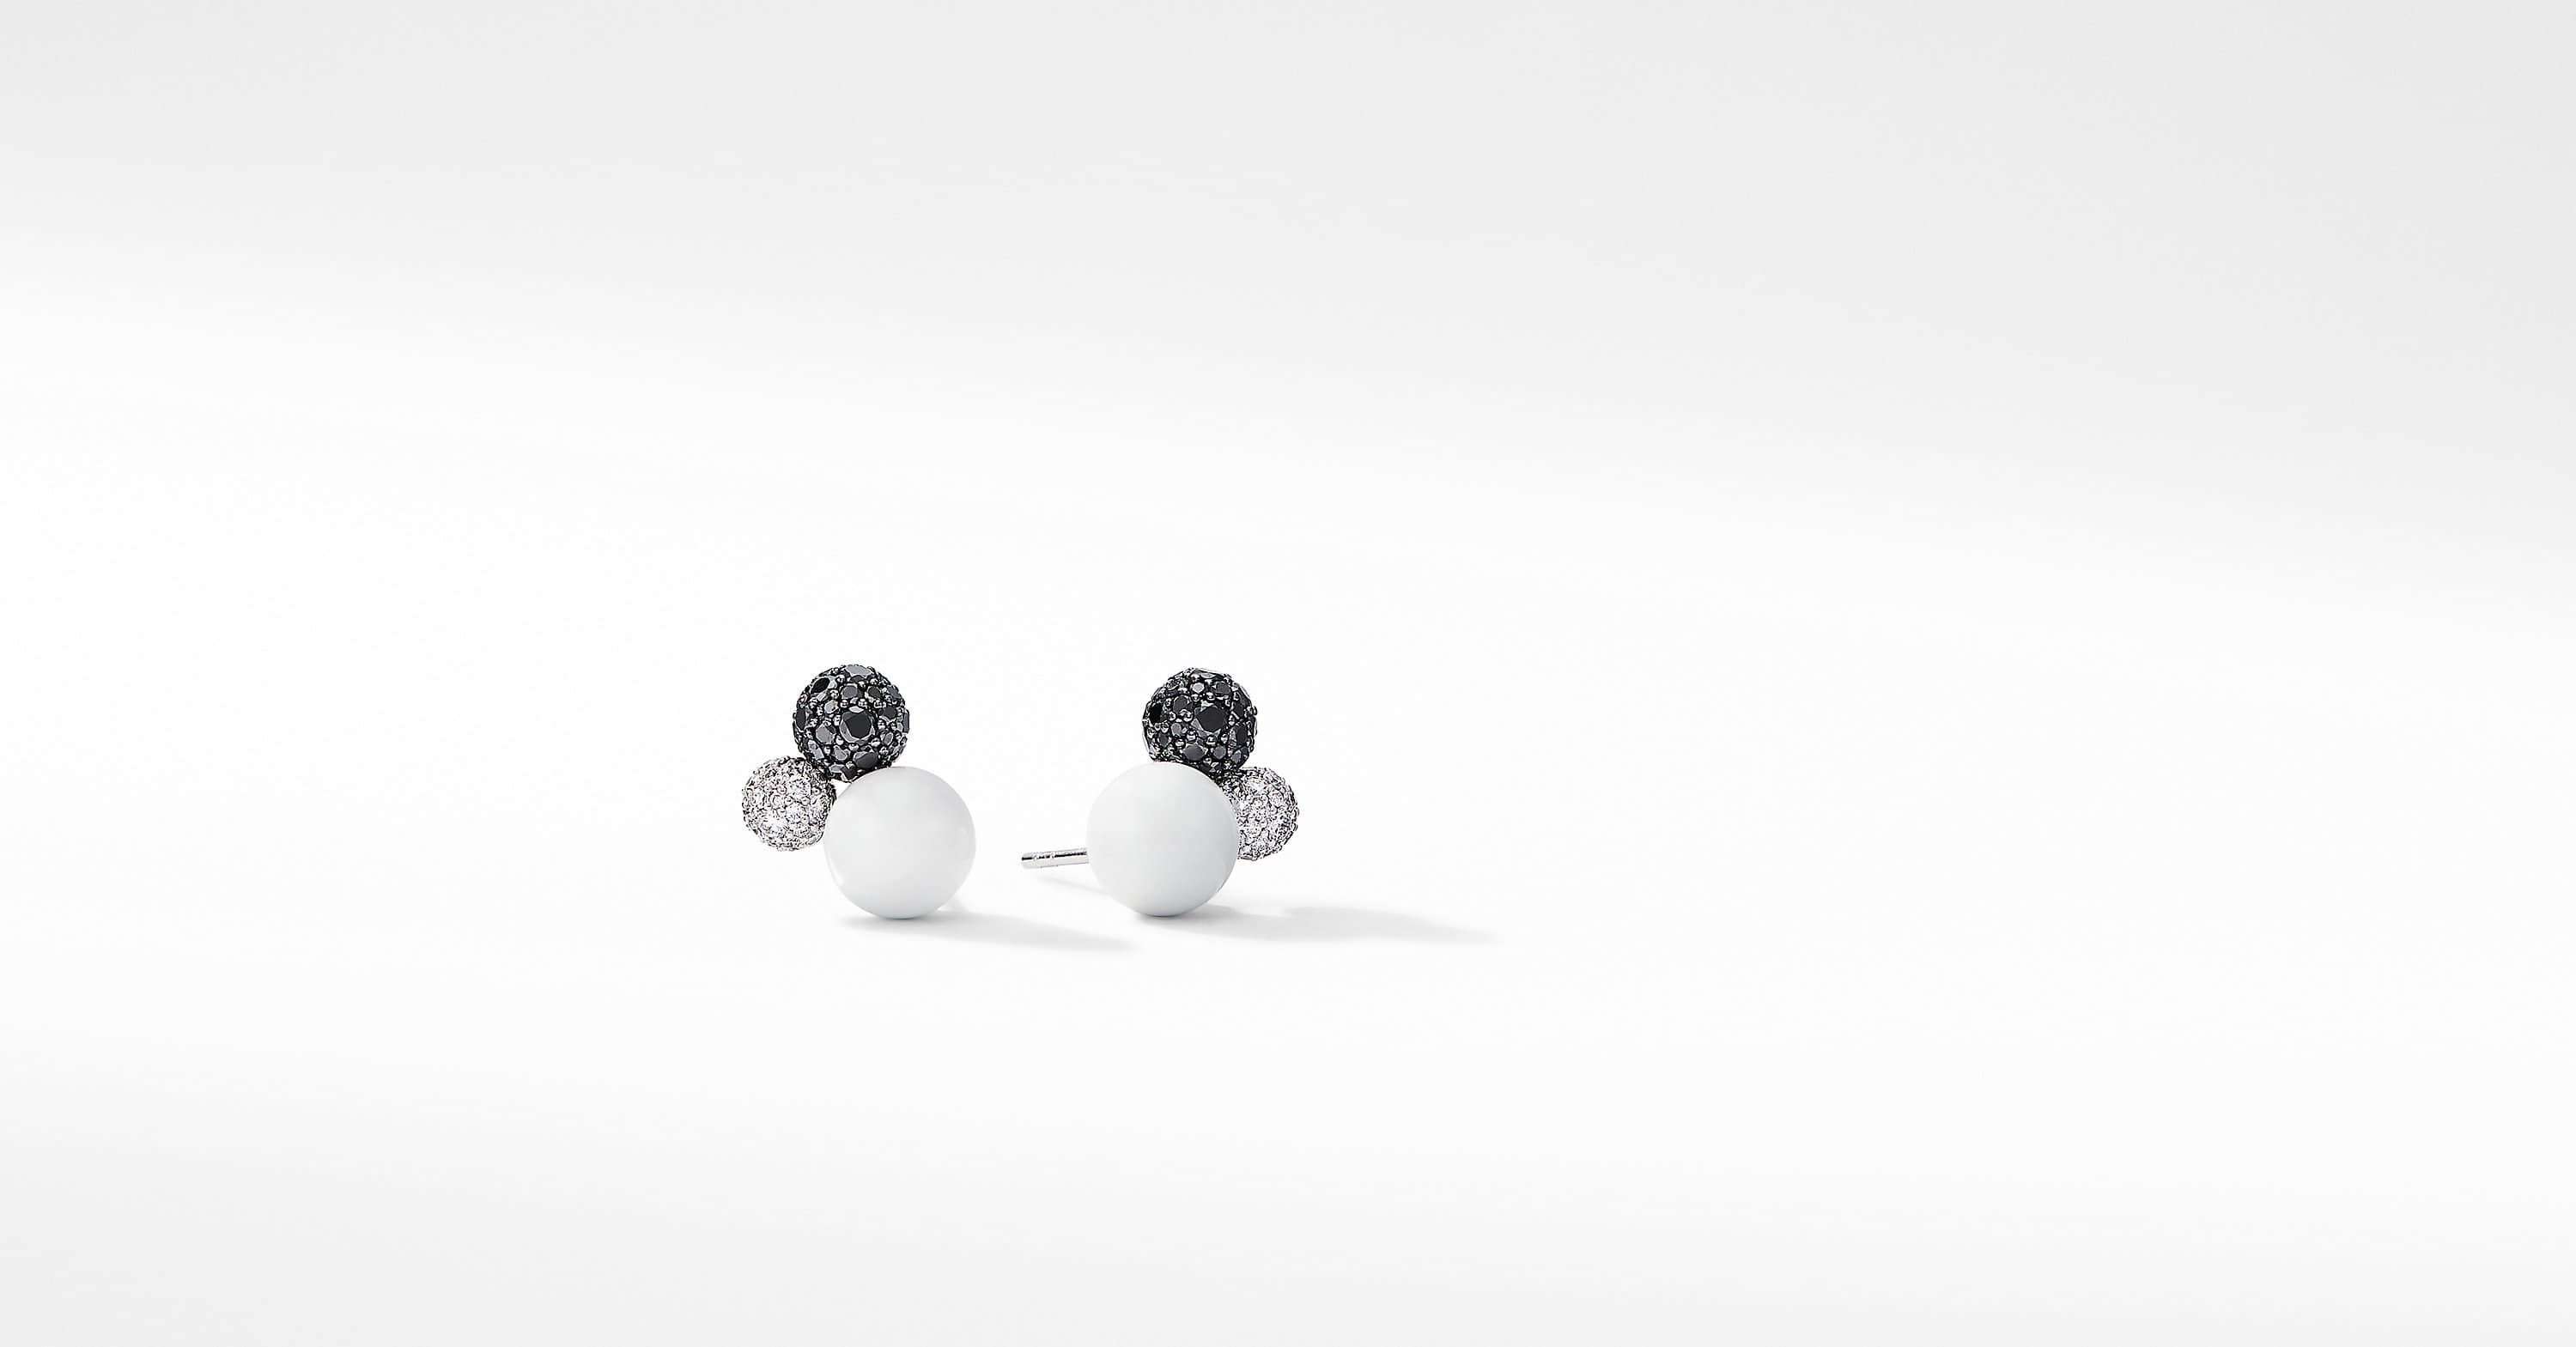 Solari Cluster Stud Earrings in 18K White Gold with Diamonds